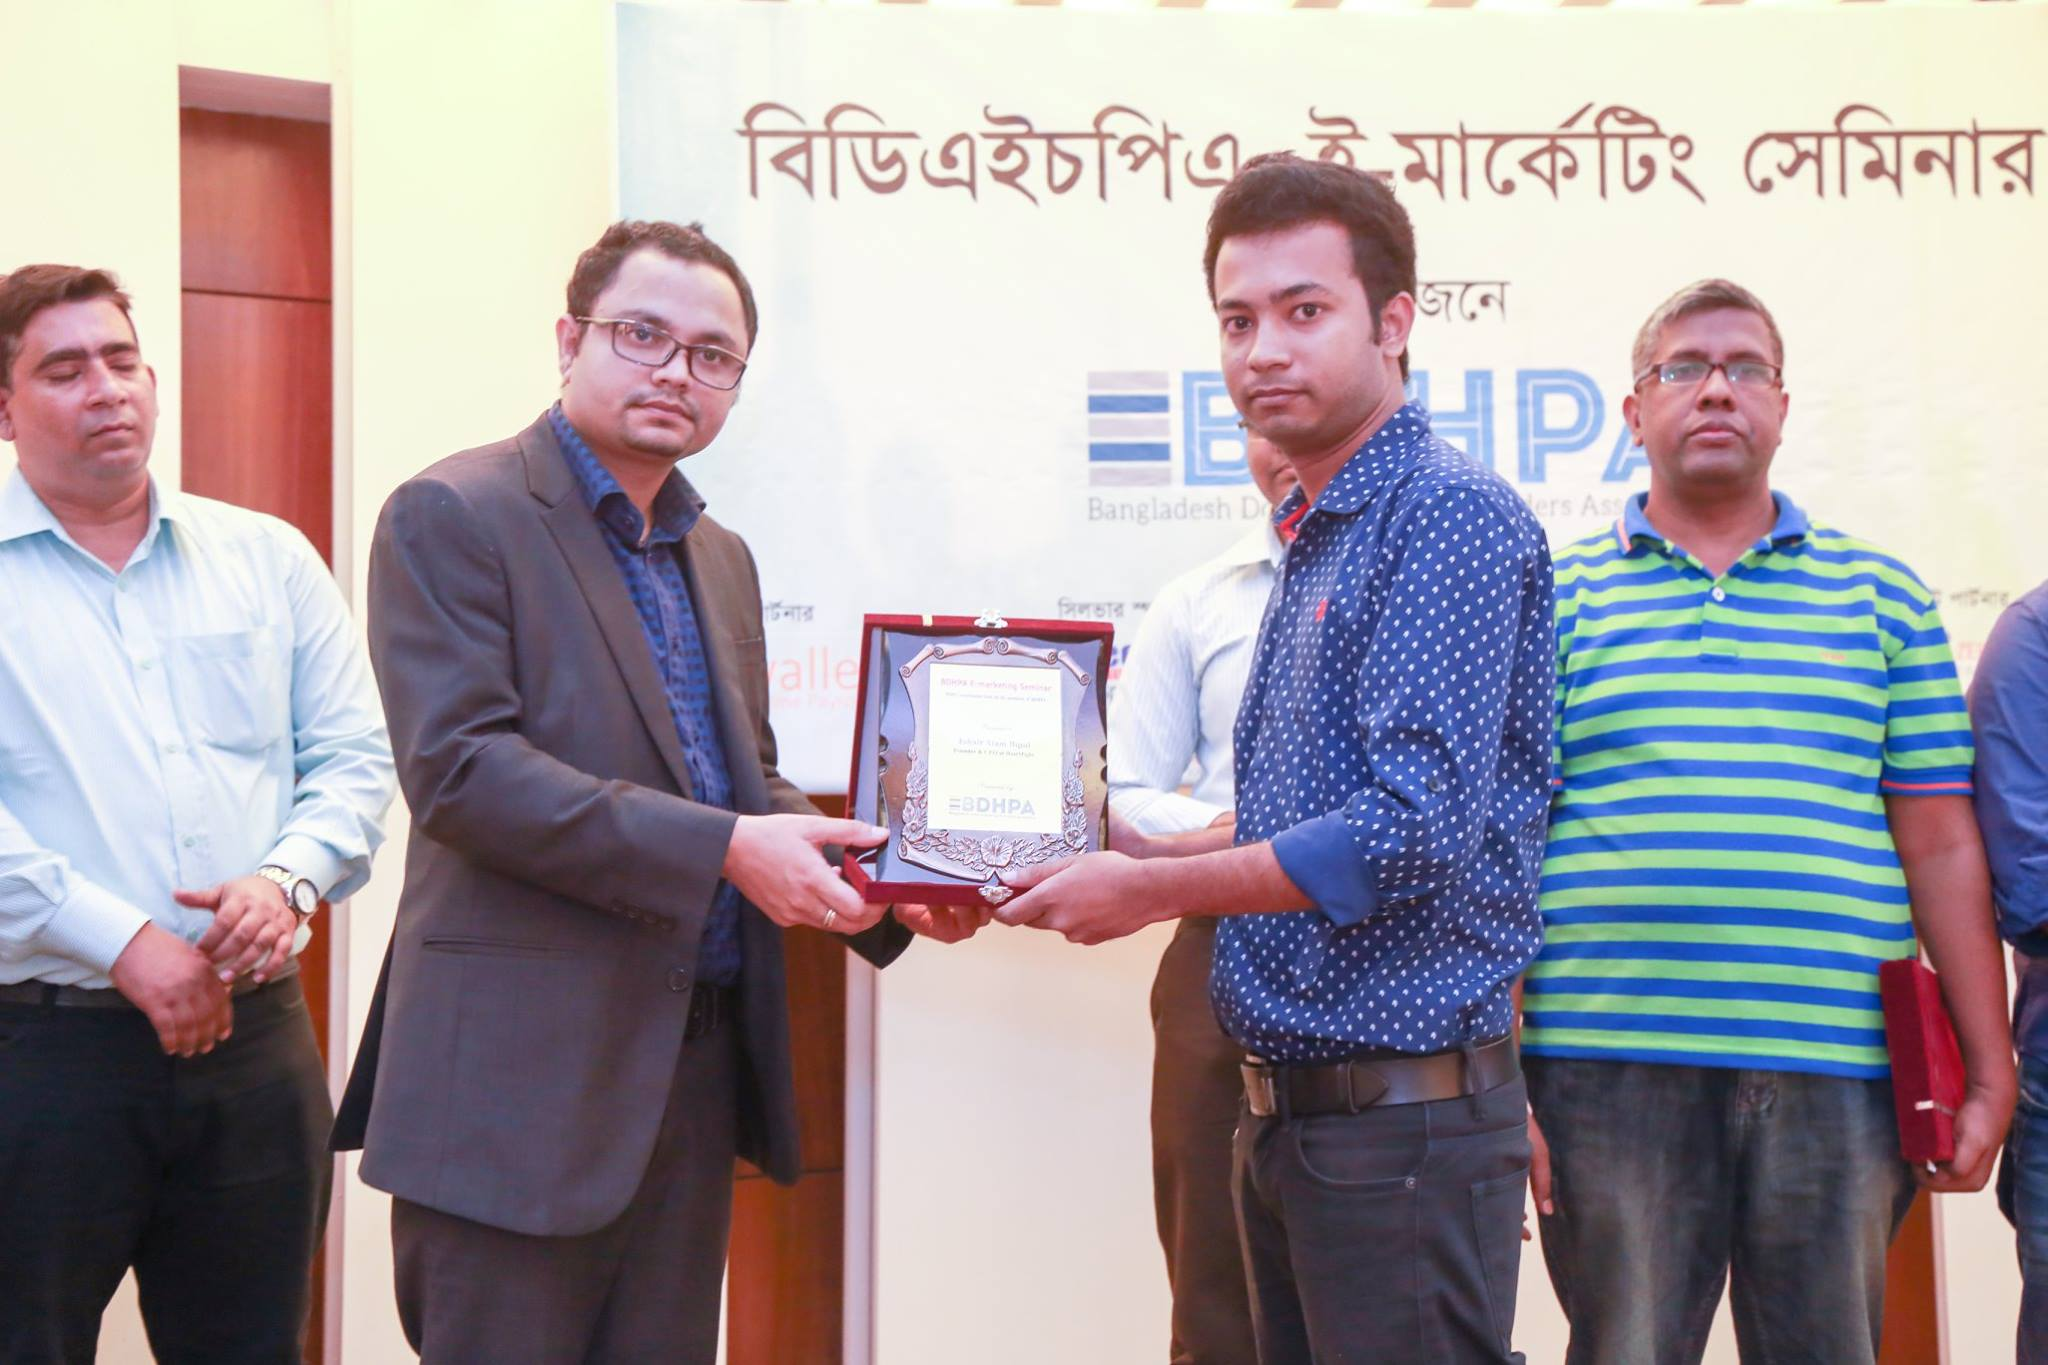 Jobair Alam Bipul , Founder & CEO of HostMight is receiving honorary crest